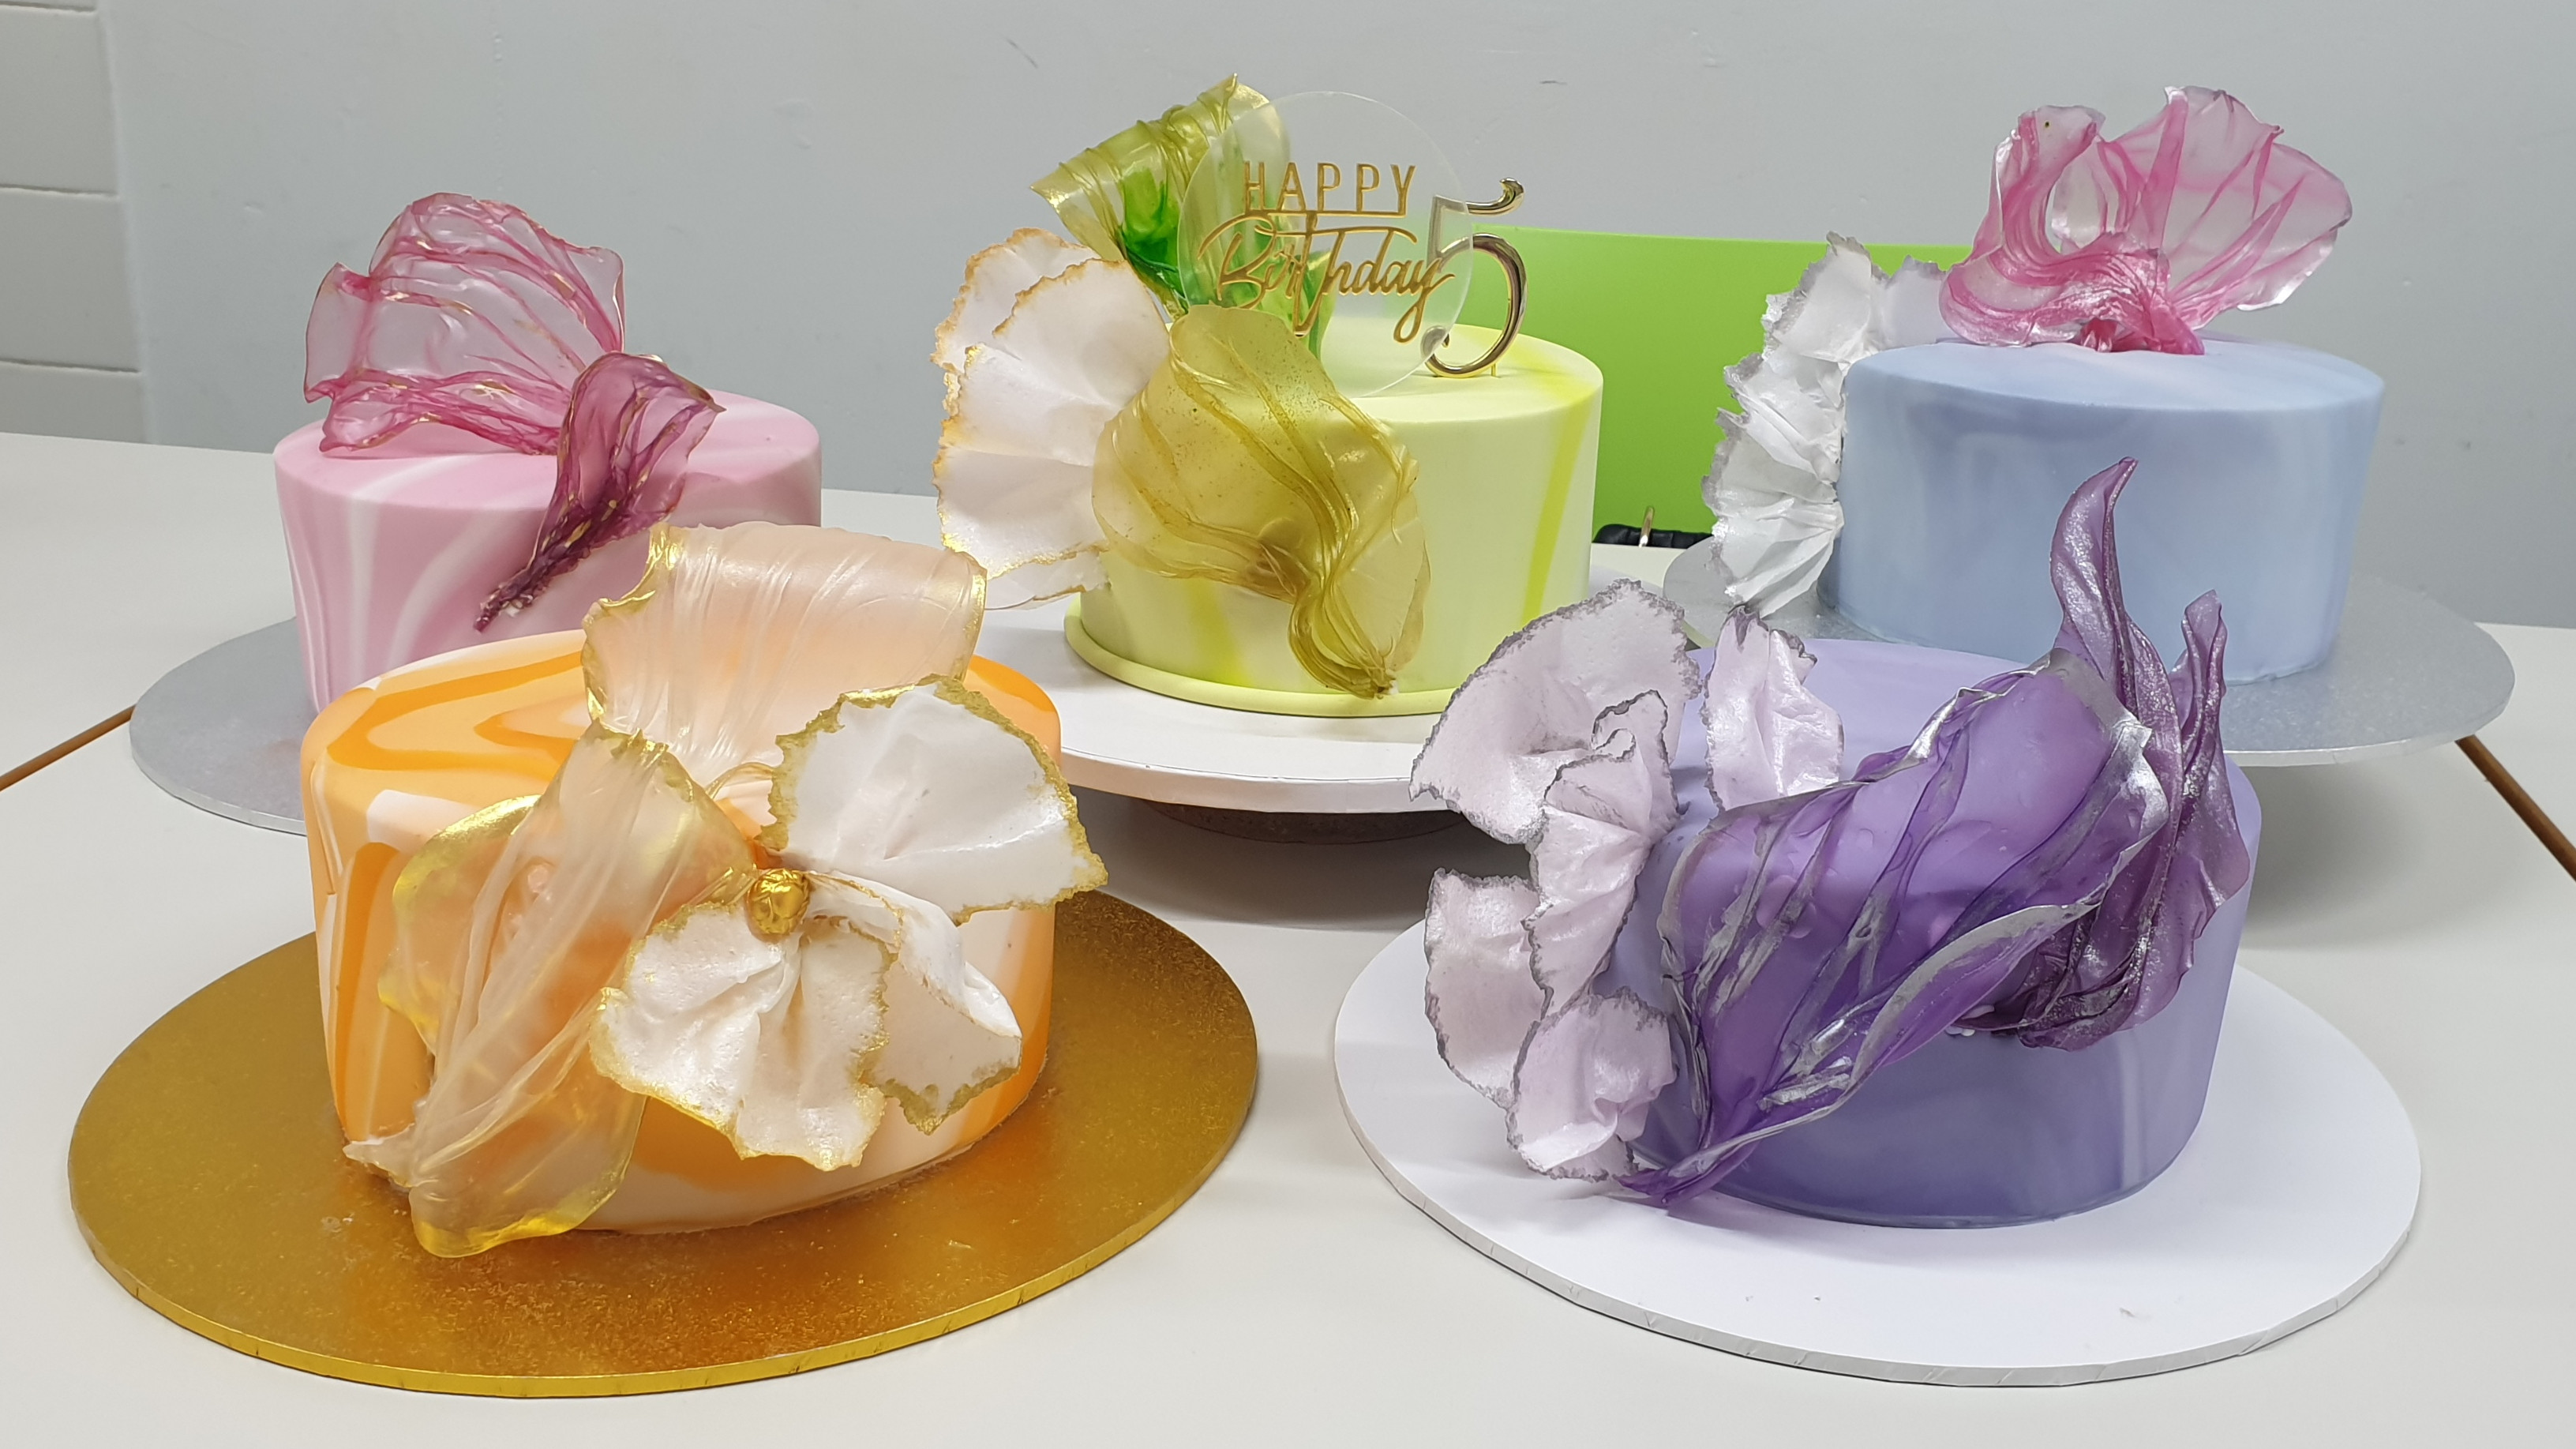 Cake Decorating 101 Class: 17th July